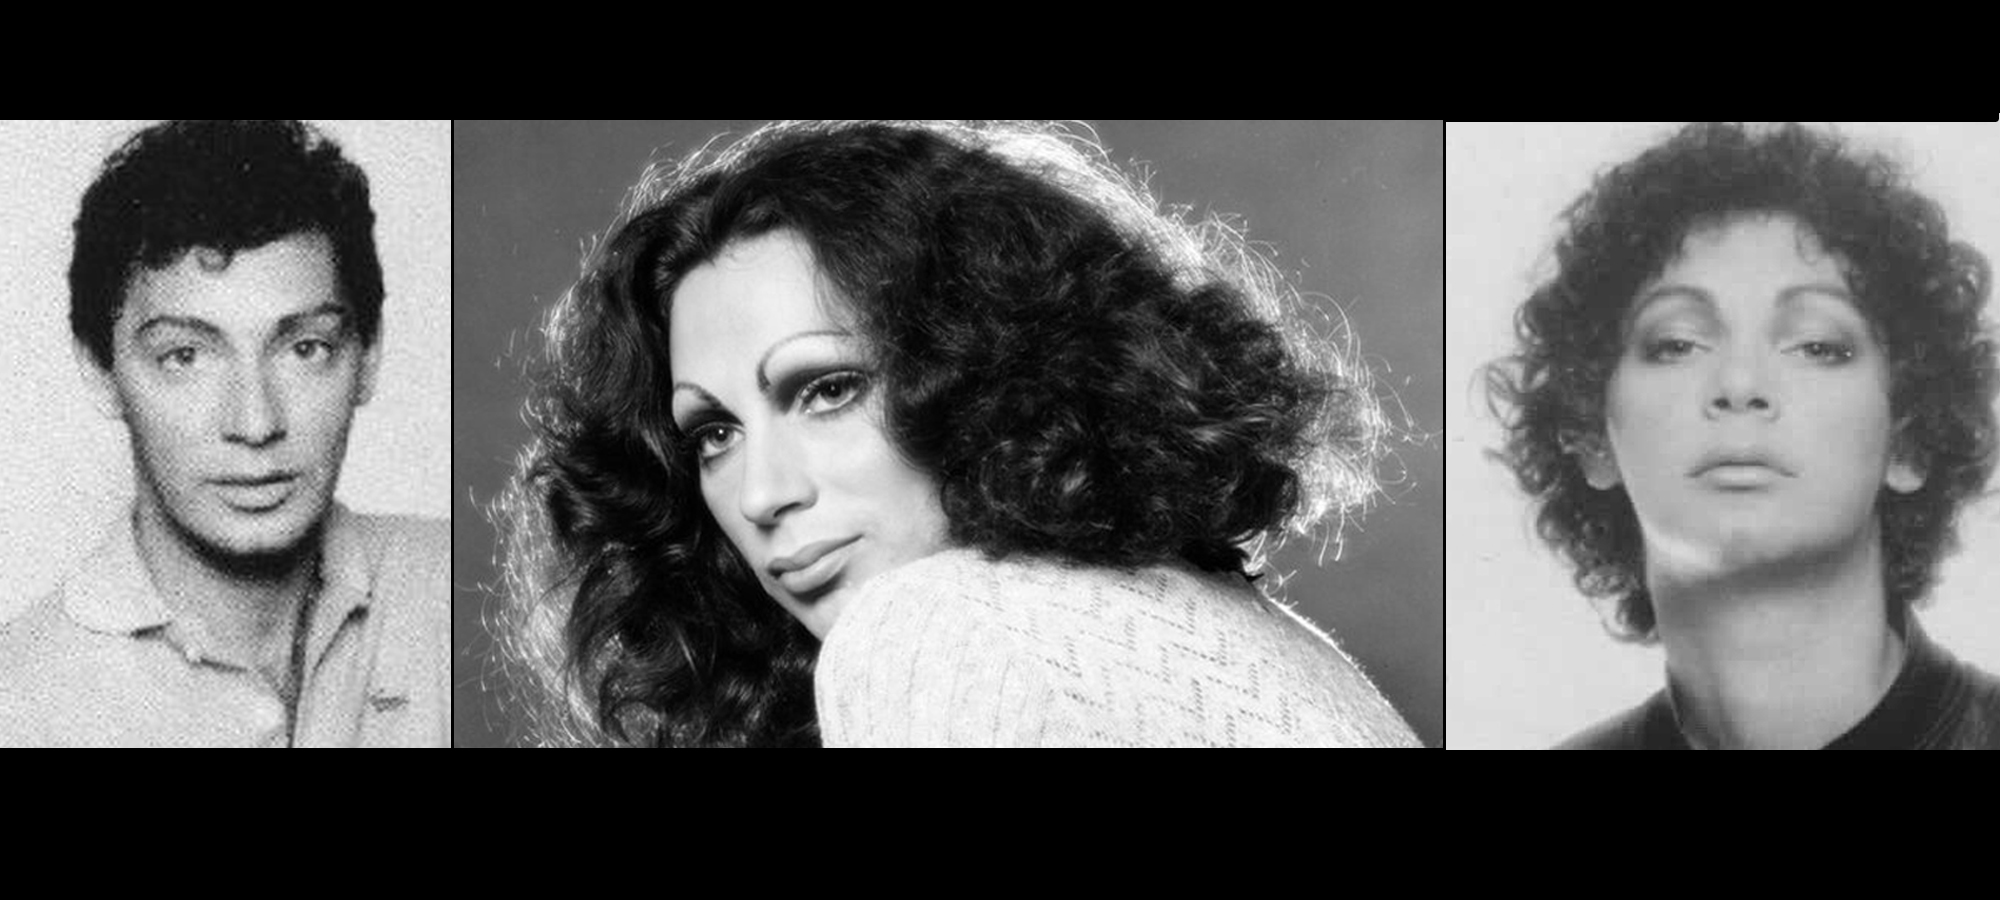 Holly Woodlawn Walking The Wild Side In High Heelship Quotient